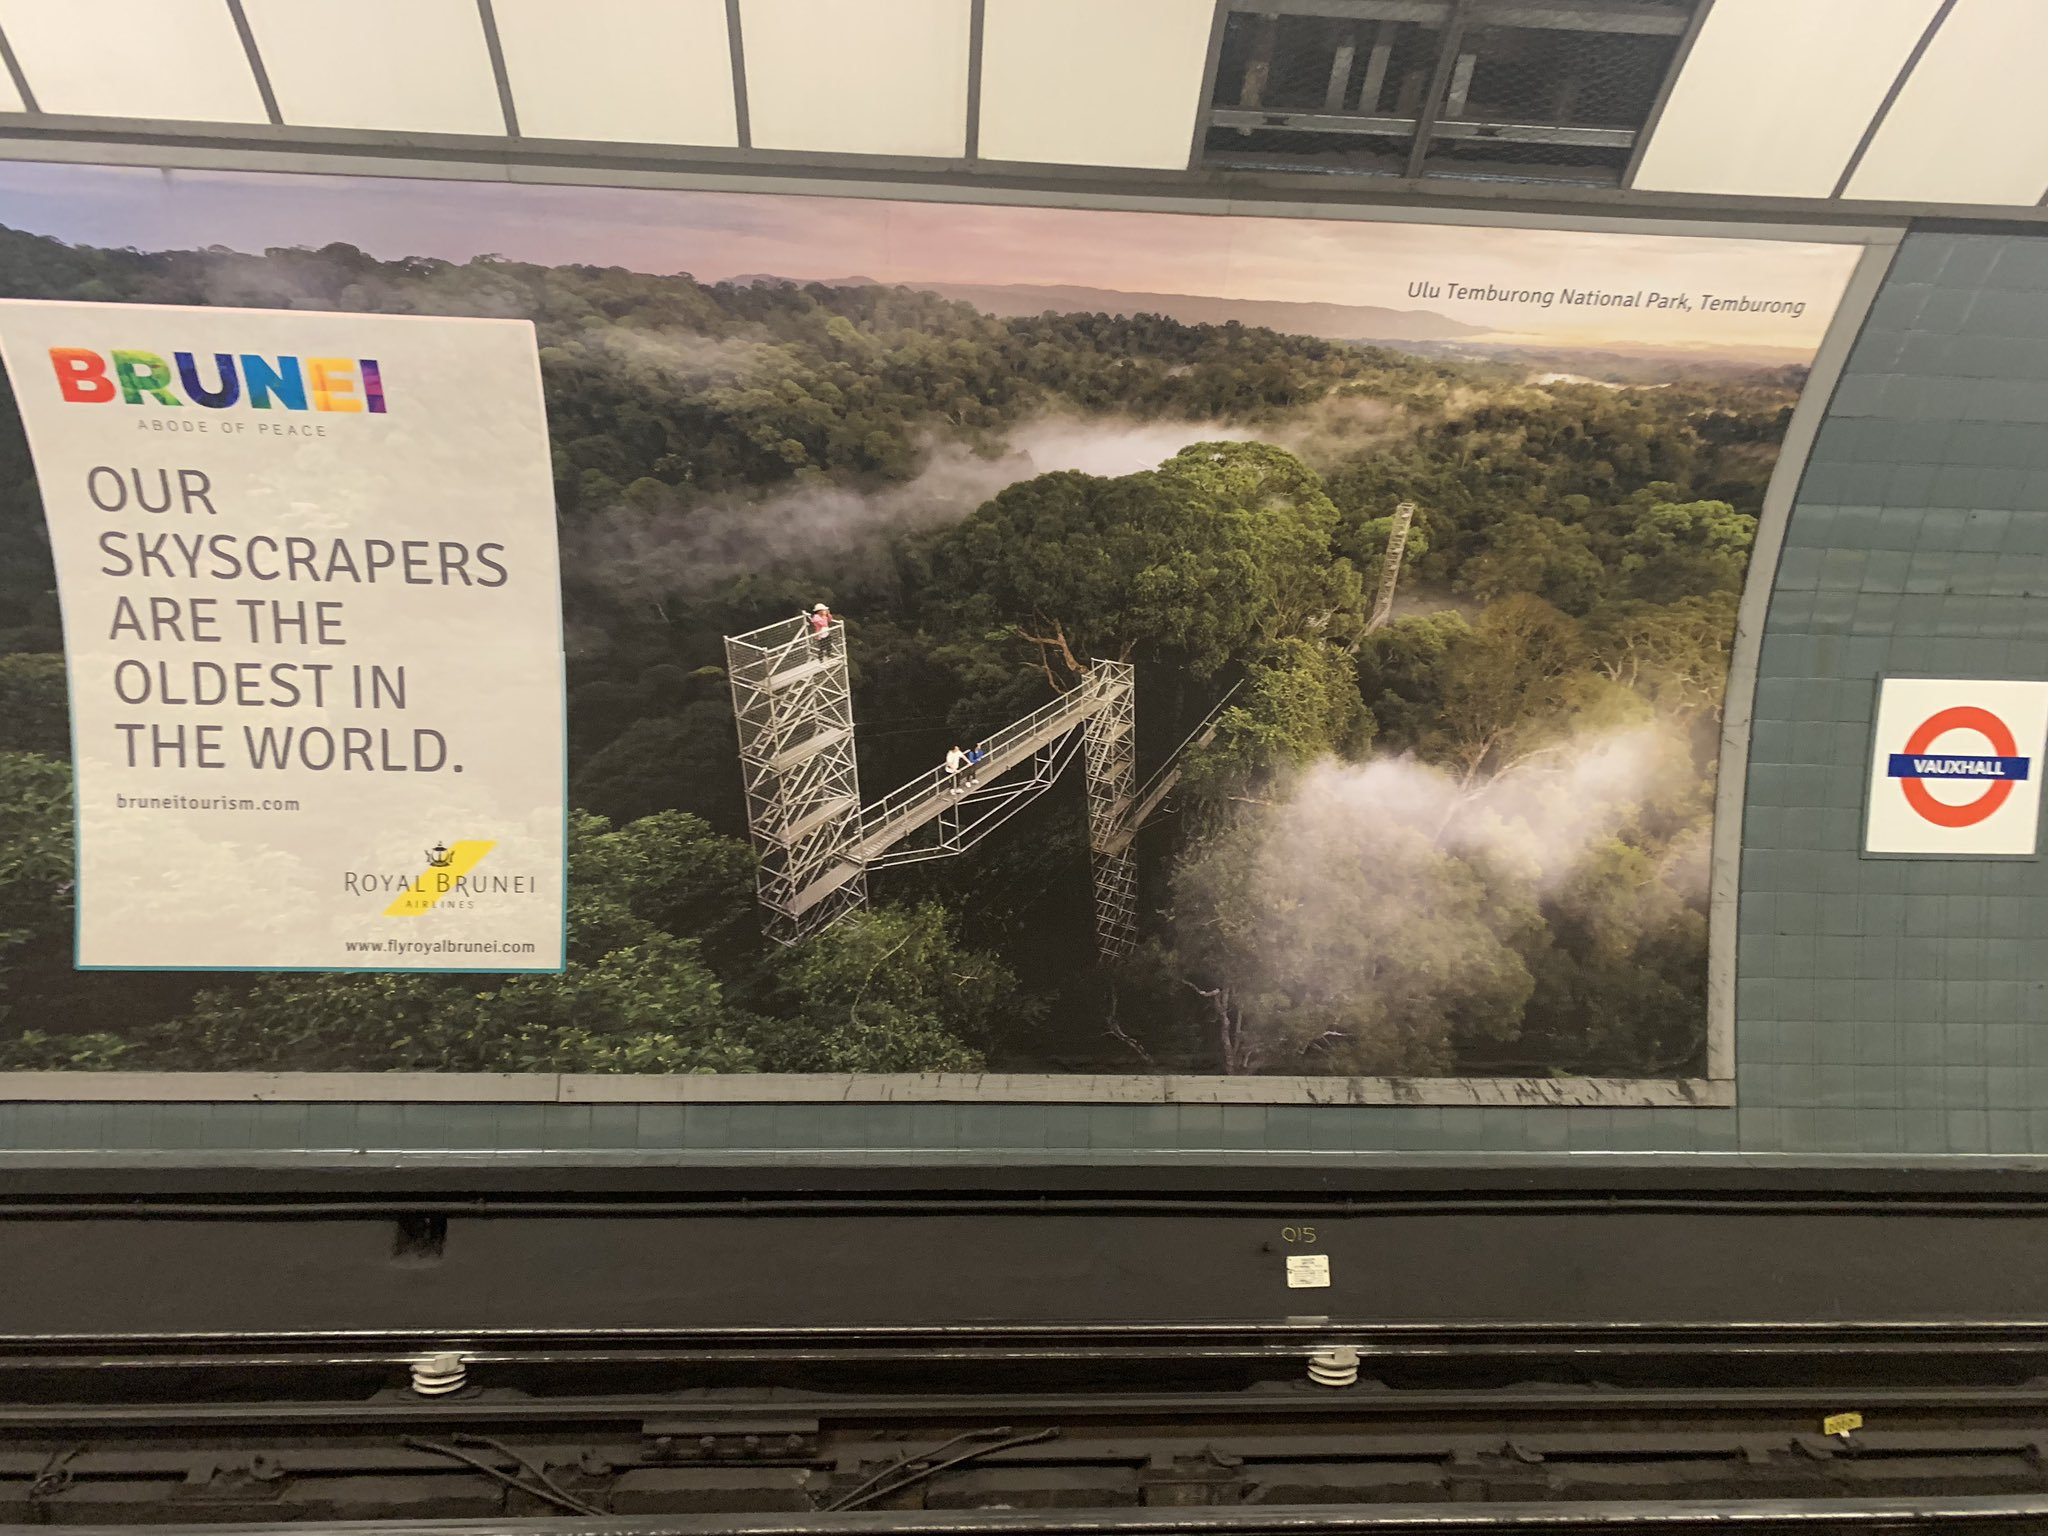 An advert promoting Brunei seen at the TfL station in Vauxhall, London.